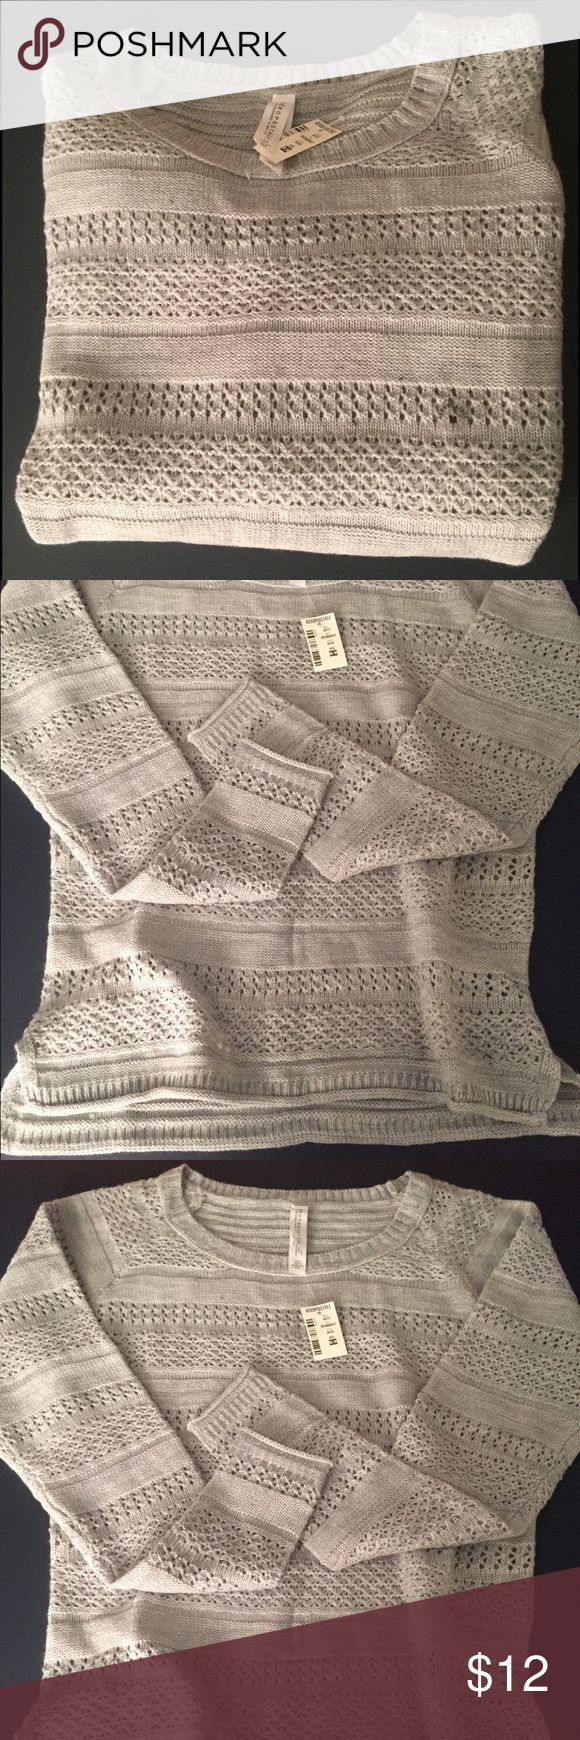 NWT Aeropostale Sweater Light gray sweater, great for layering. This is a size medium, snug fit. New with tags! Great for fall 🍂 Aeropostale Sweaters Crew & Scoop Necks